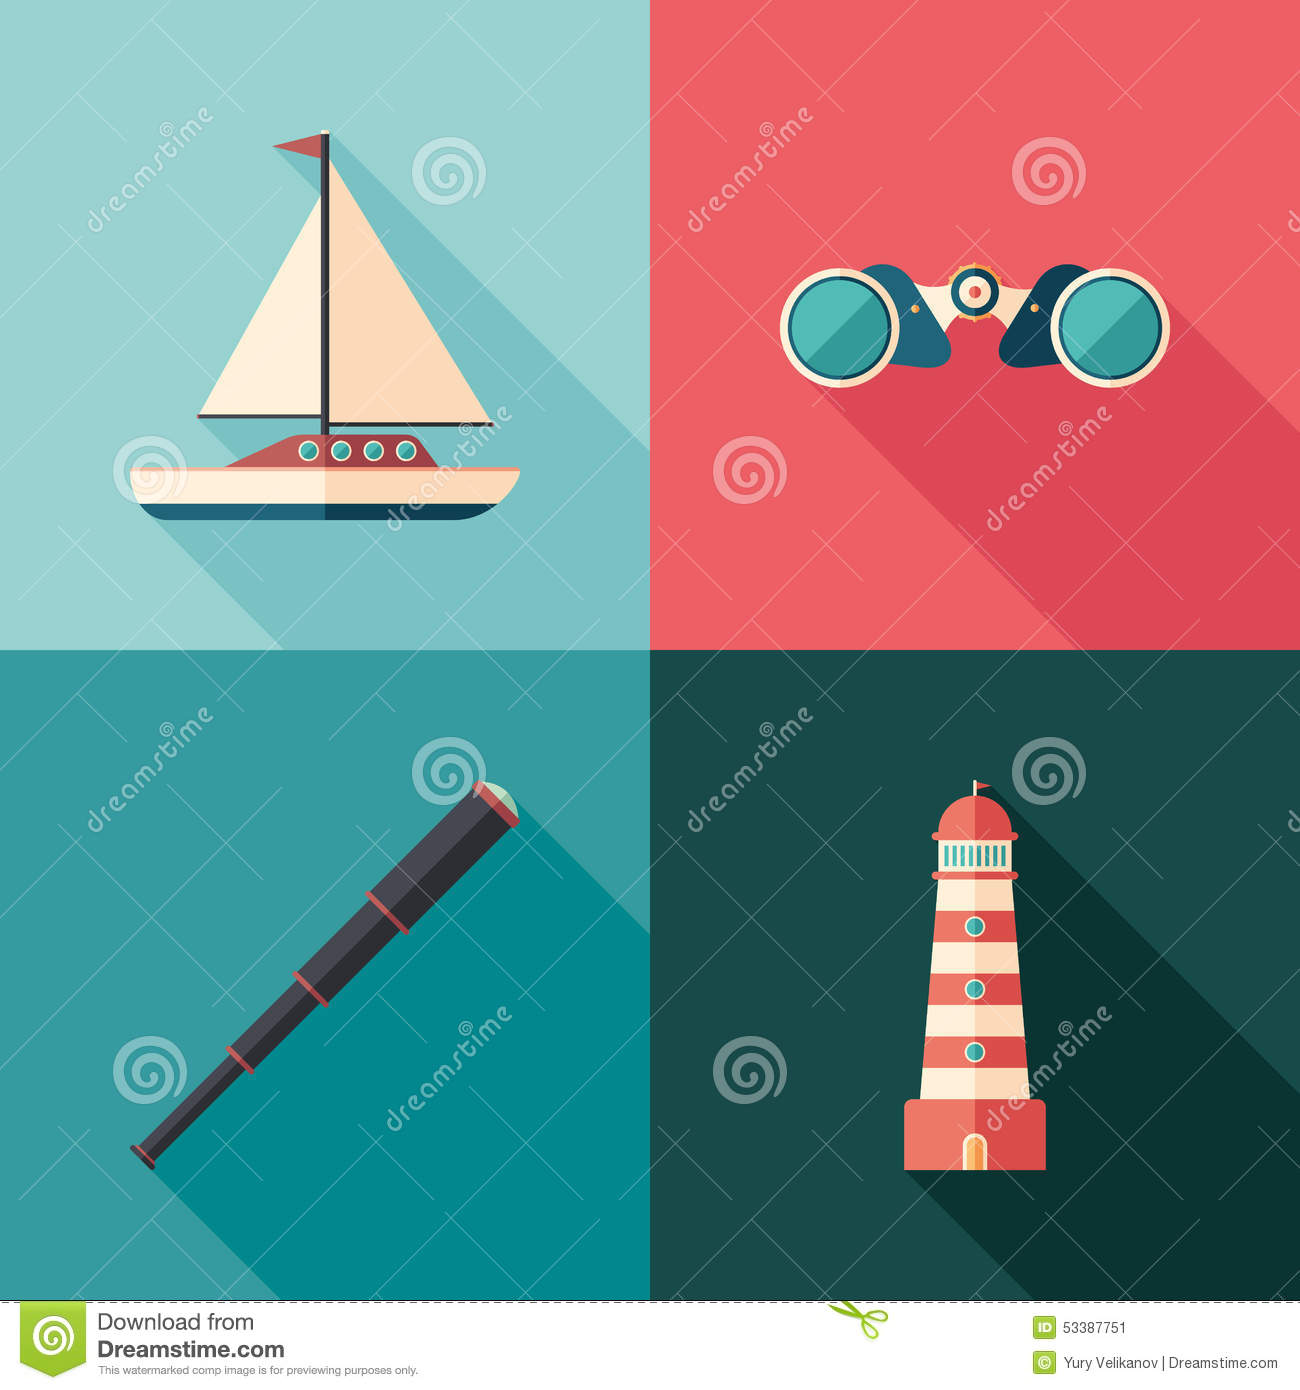 Set of marine flat square icons with long shadows.